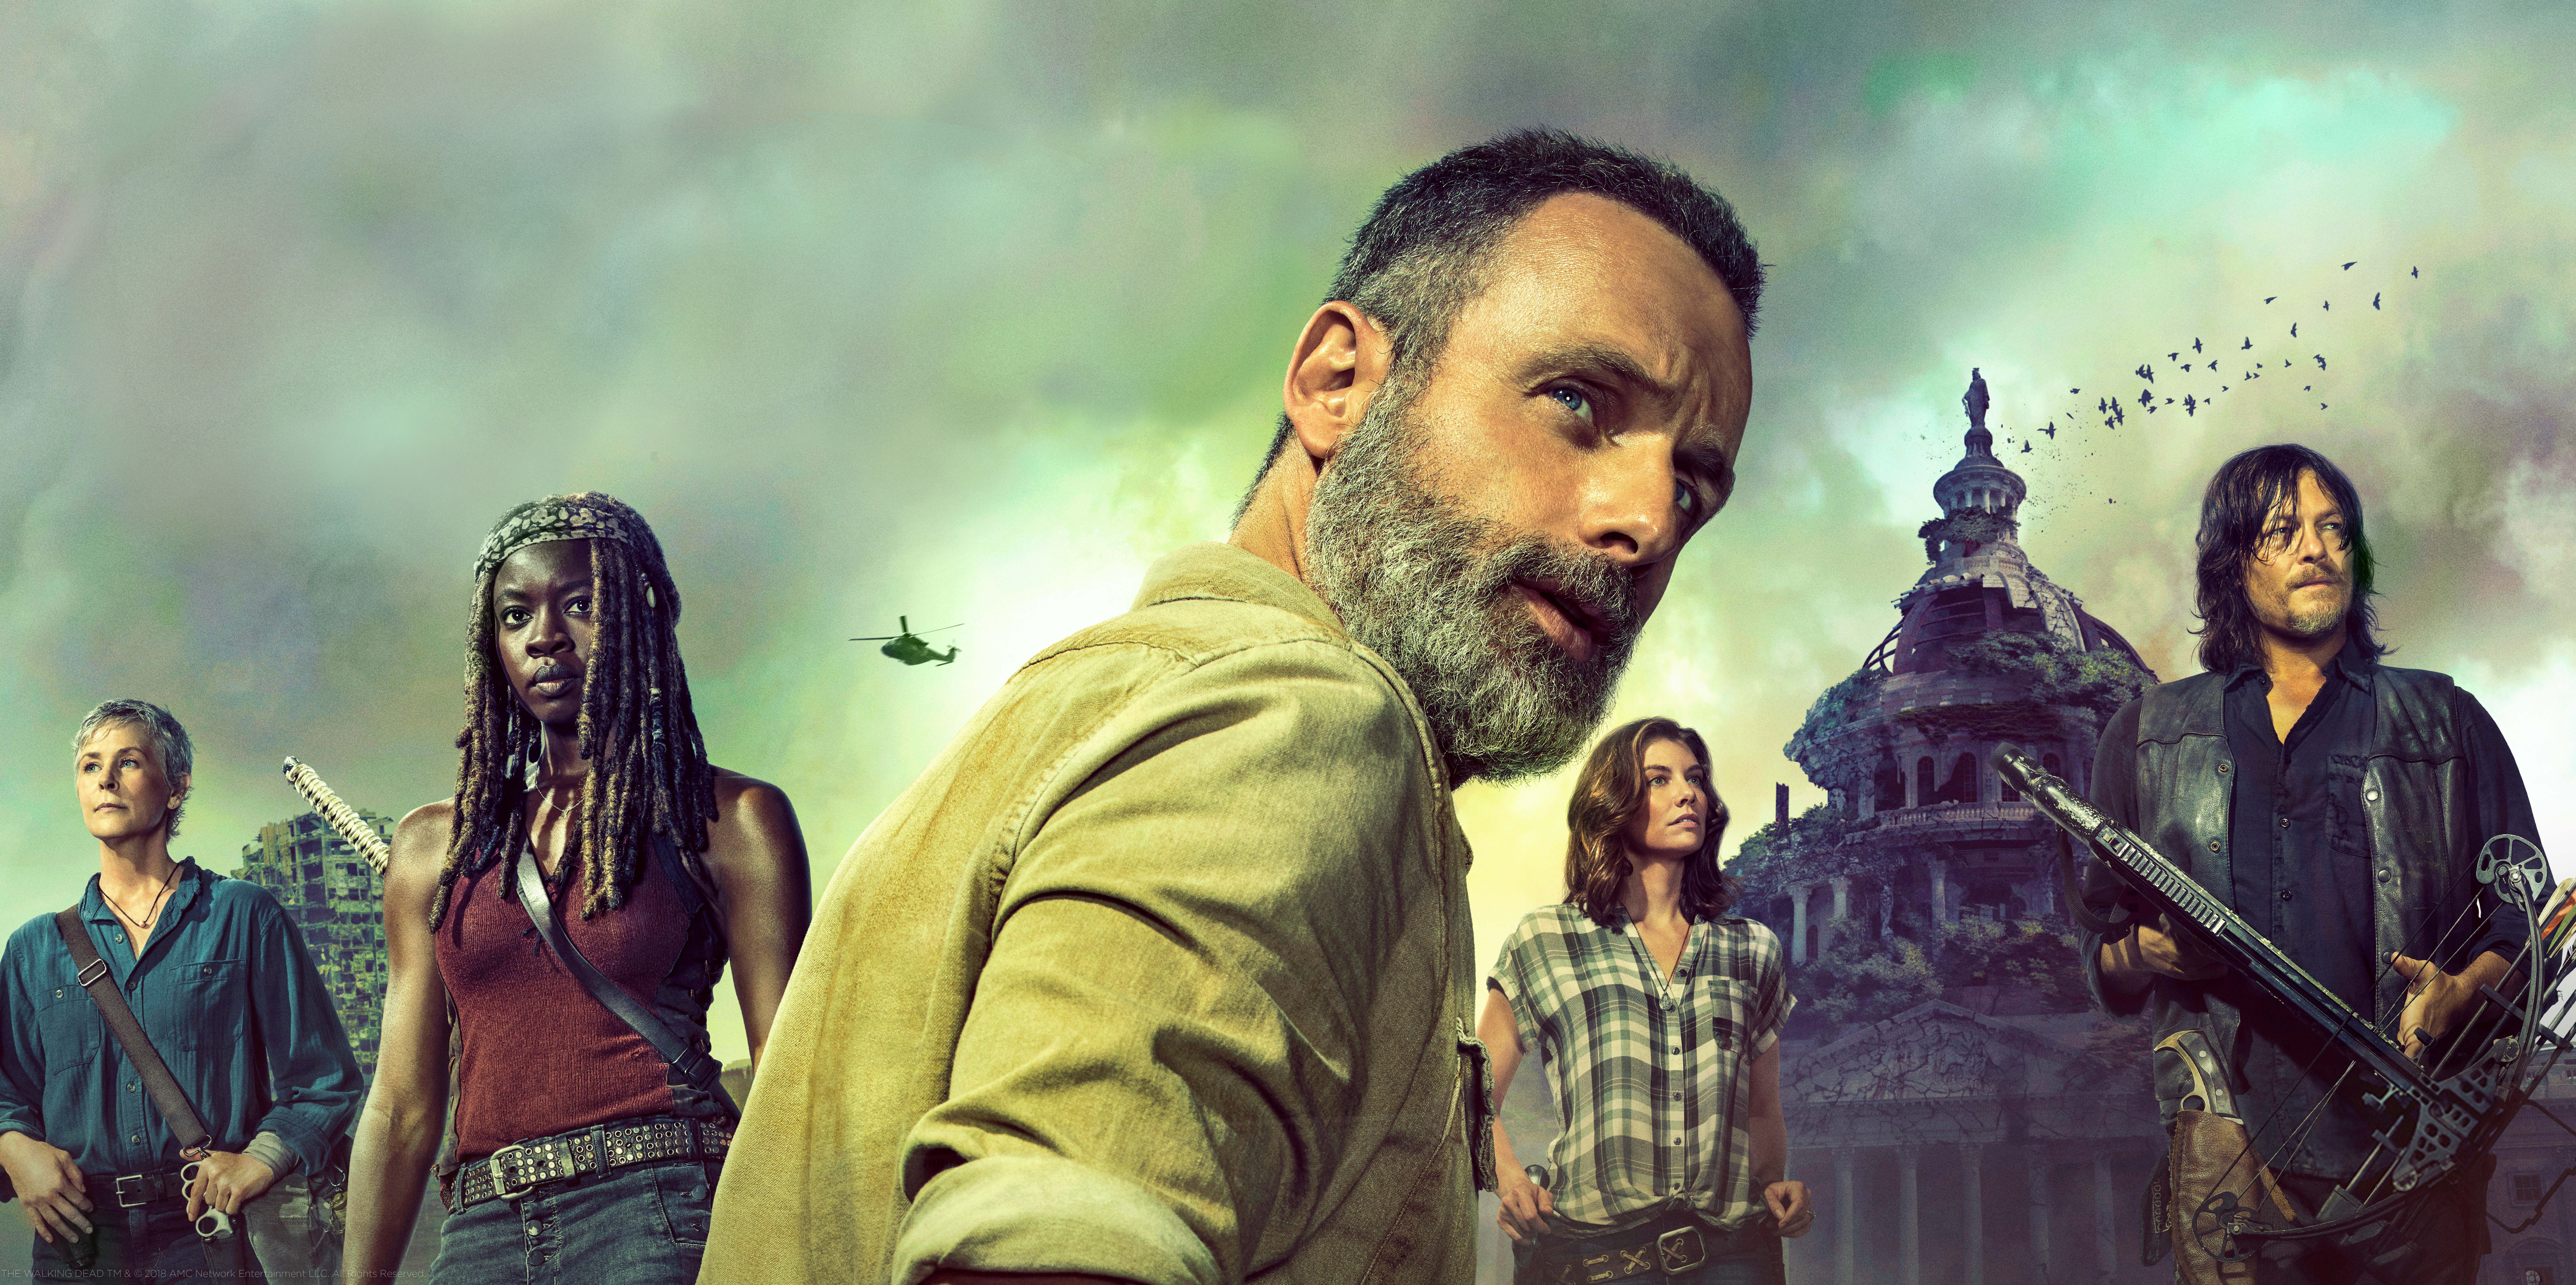 4000x3000 The Walking Dead Season 9 2018 4000x3000 Resolution Hd